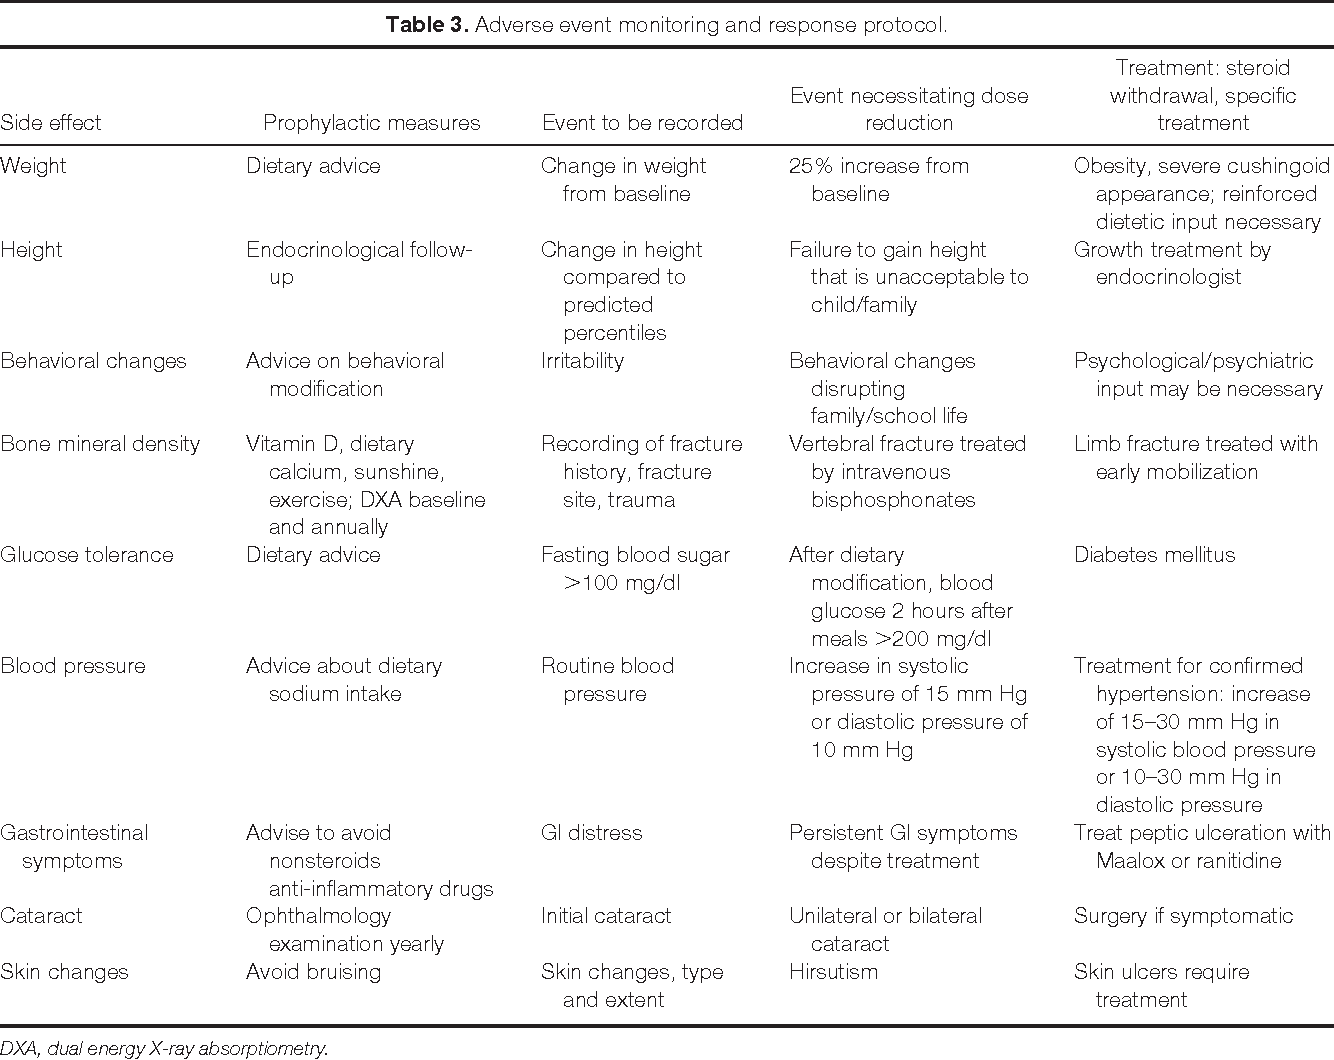 Table 3 from The role of corticosteroids in muscular dystrophy: a